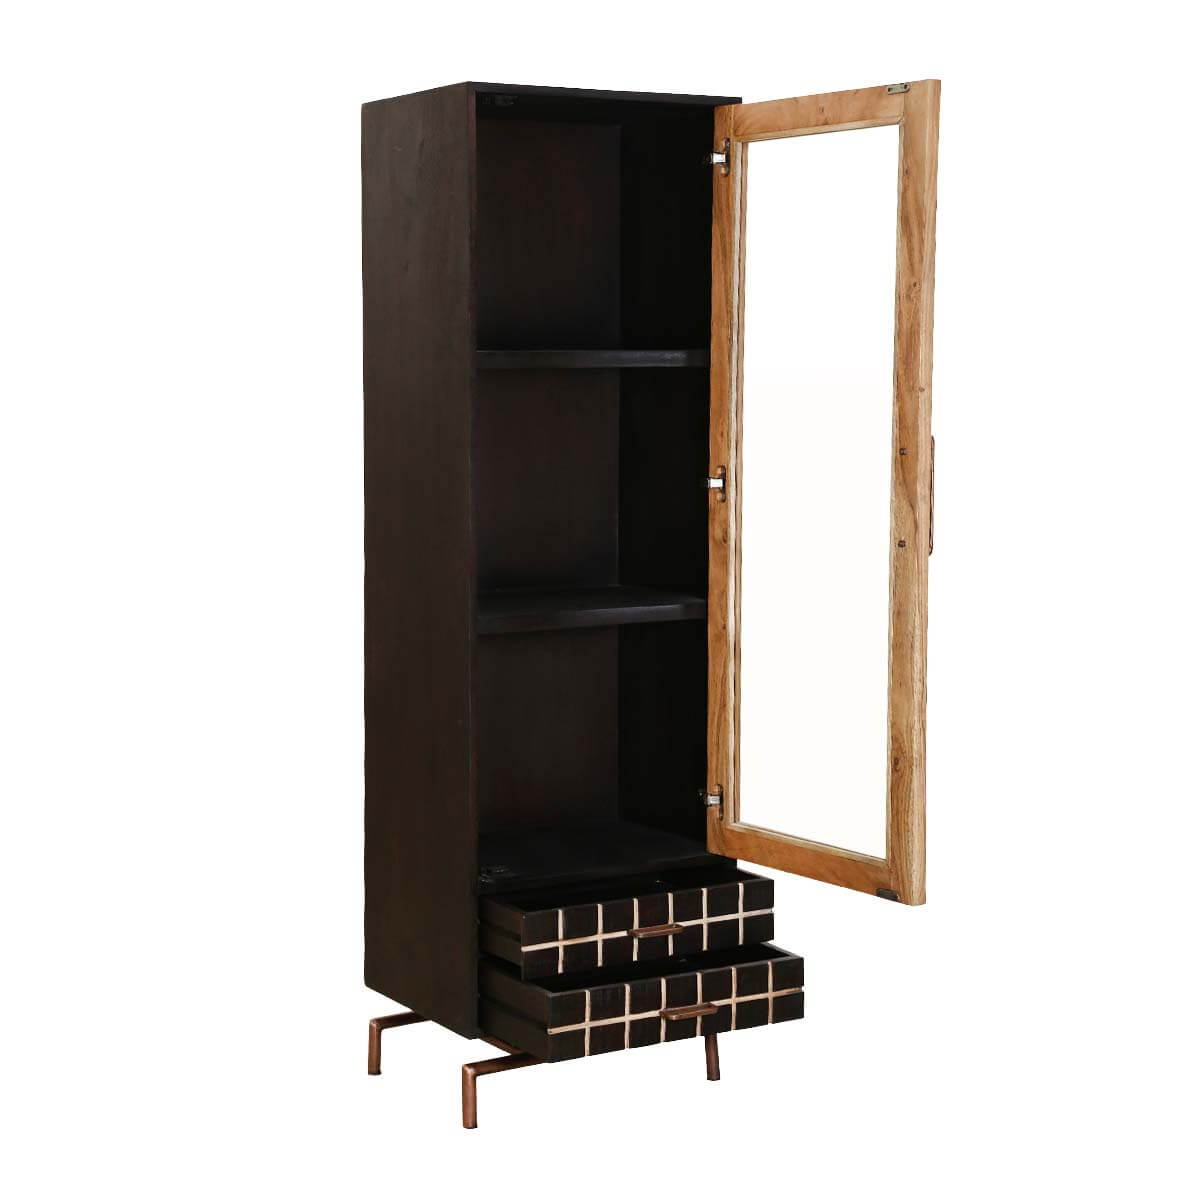 Acacia Wood Door : Barbara acacia wood drawer single glass door display cabinet